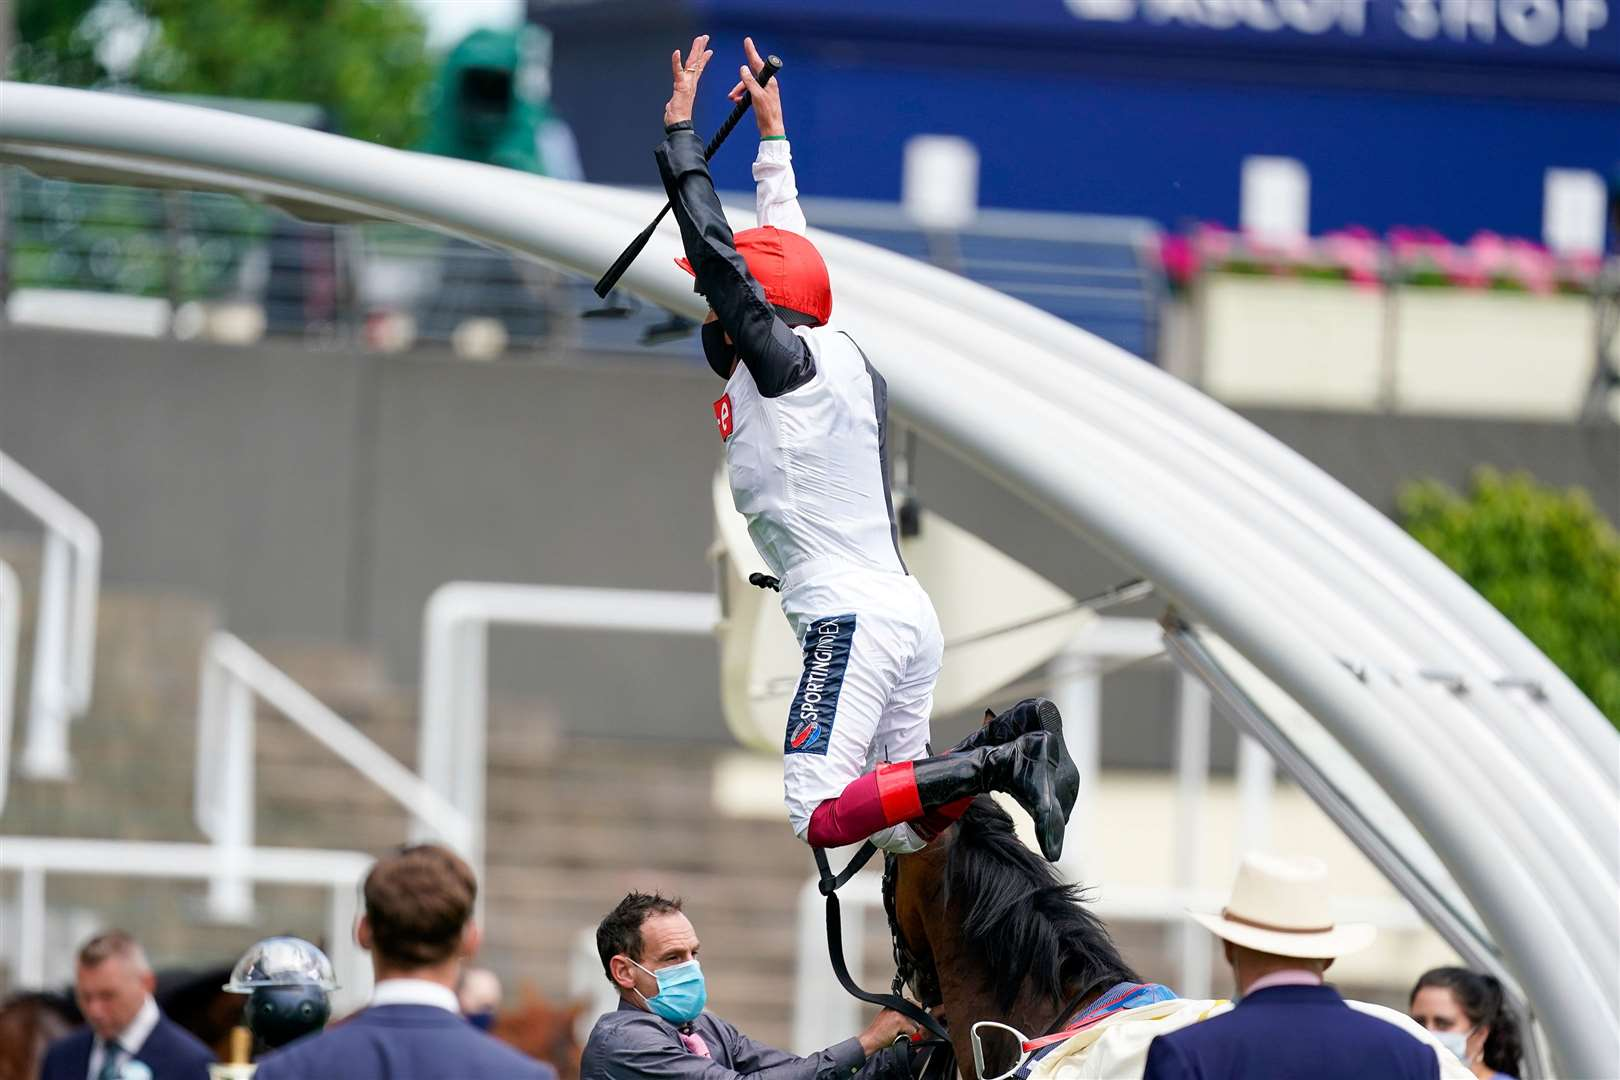 ASCOT, ENGLAND - JUNE 16: Frankie Dettori leaps from Frankly Darling after winning The Ribblesdale Stakes at Ascot Racecourse on Day 1 of the Royal Meeting on June 16, 2020 in Ascot, England. The Queen will miss out on attending Royal Ascot in person for the first time in her 68 year reign. Her Majesty is reported to be planning to watch the racing from home at Windsor Castle, but she will not be able to attend, as the meet goes on behind closed doors due to the Covid-19 pandemic. (Photo by Alan Crowhurst/Getty Images). (36980766)